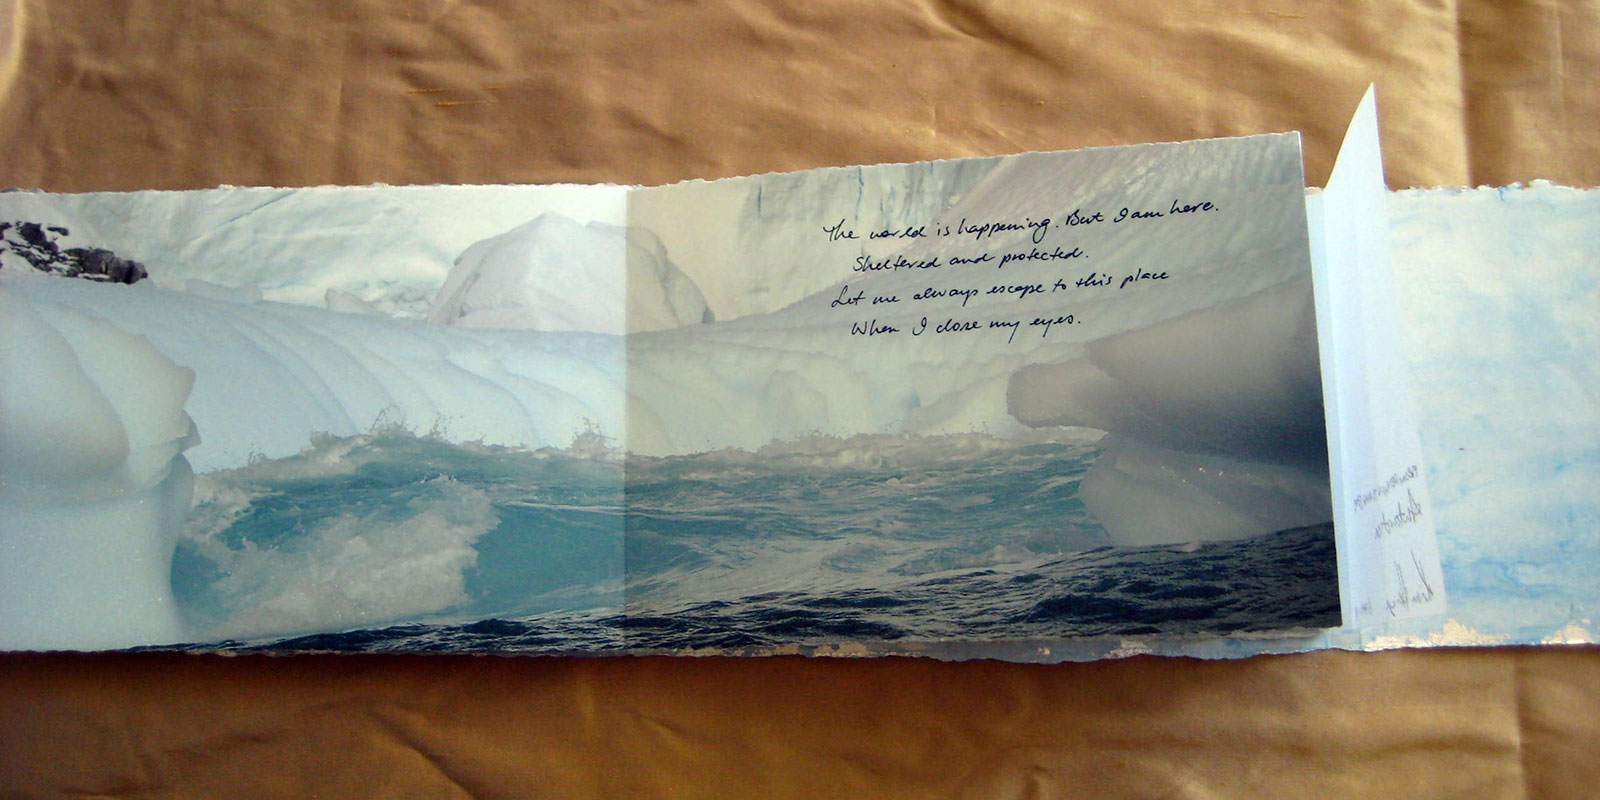 From Penguins to Polar Bears - Antarctica - page 5